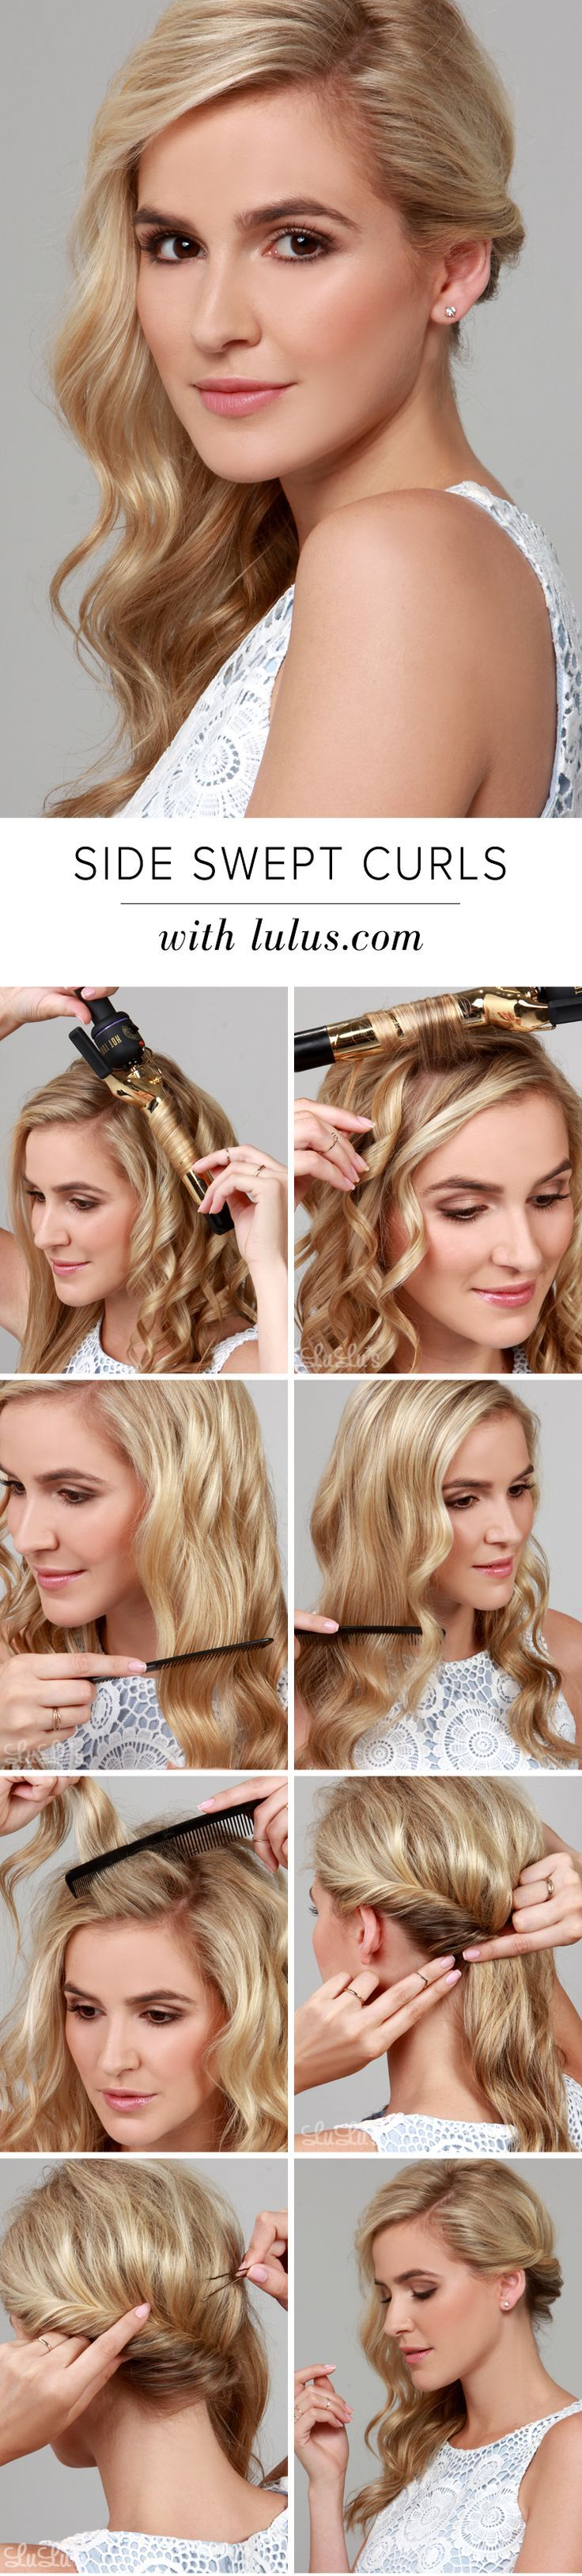 Lulus How To Side Swept Curls Hair Tutorial Pinterest